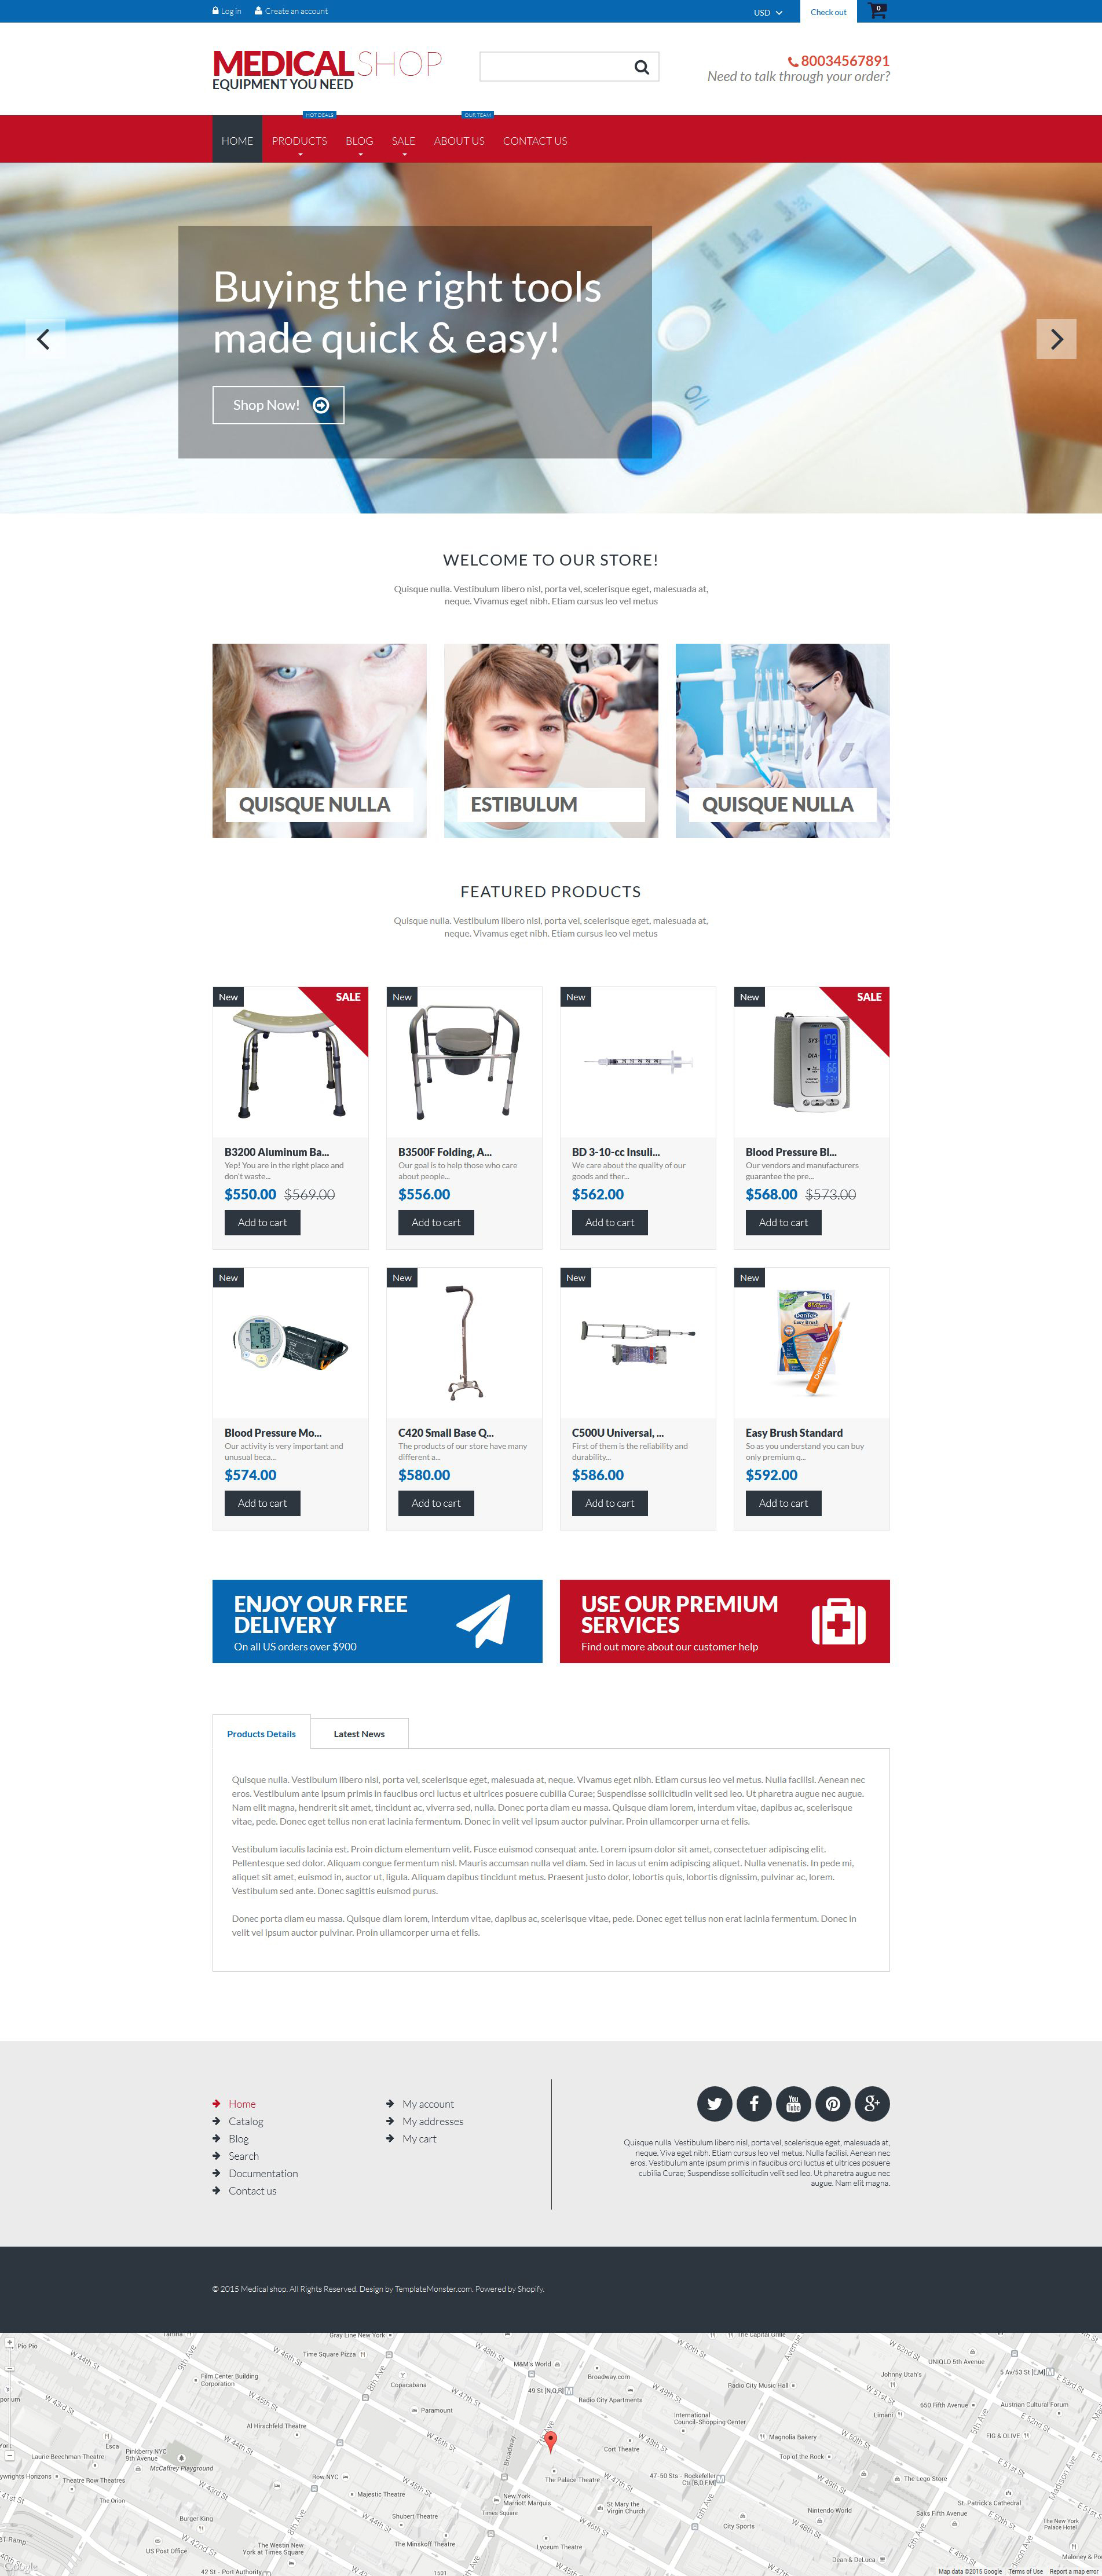 The Medical Shop Shopify Design 53141, one of the best Shopify themes of its kind (medical, most popular), also known as medical shop Shopify template, equipment Shopify template, medicine Shopify template, equipment store Shopify template, pump Shopify template, therapy Shopify template, ophthalmology Shopify template, monitor Shopify template, laboratory Shopify template, neonatal Shopify template, surgical Shopify template, veterinary Shopify template, respiratory Shopify template, neurology Shopify template, exam Shopify template, endoscopy Shopify template, cardiology Shopify template, cosmetic Shopify template, defibrillator and related with medical shop, equipment, medicine, equipment store, pump, therapy, ophthalmology, monitor, laboratory, neonatal, surgical, veterinary, respiratory, neurology, exam, endoscopy, cardiology, cosmetic, defibrillator, etc.